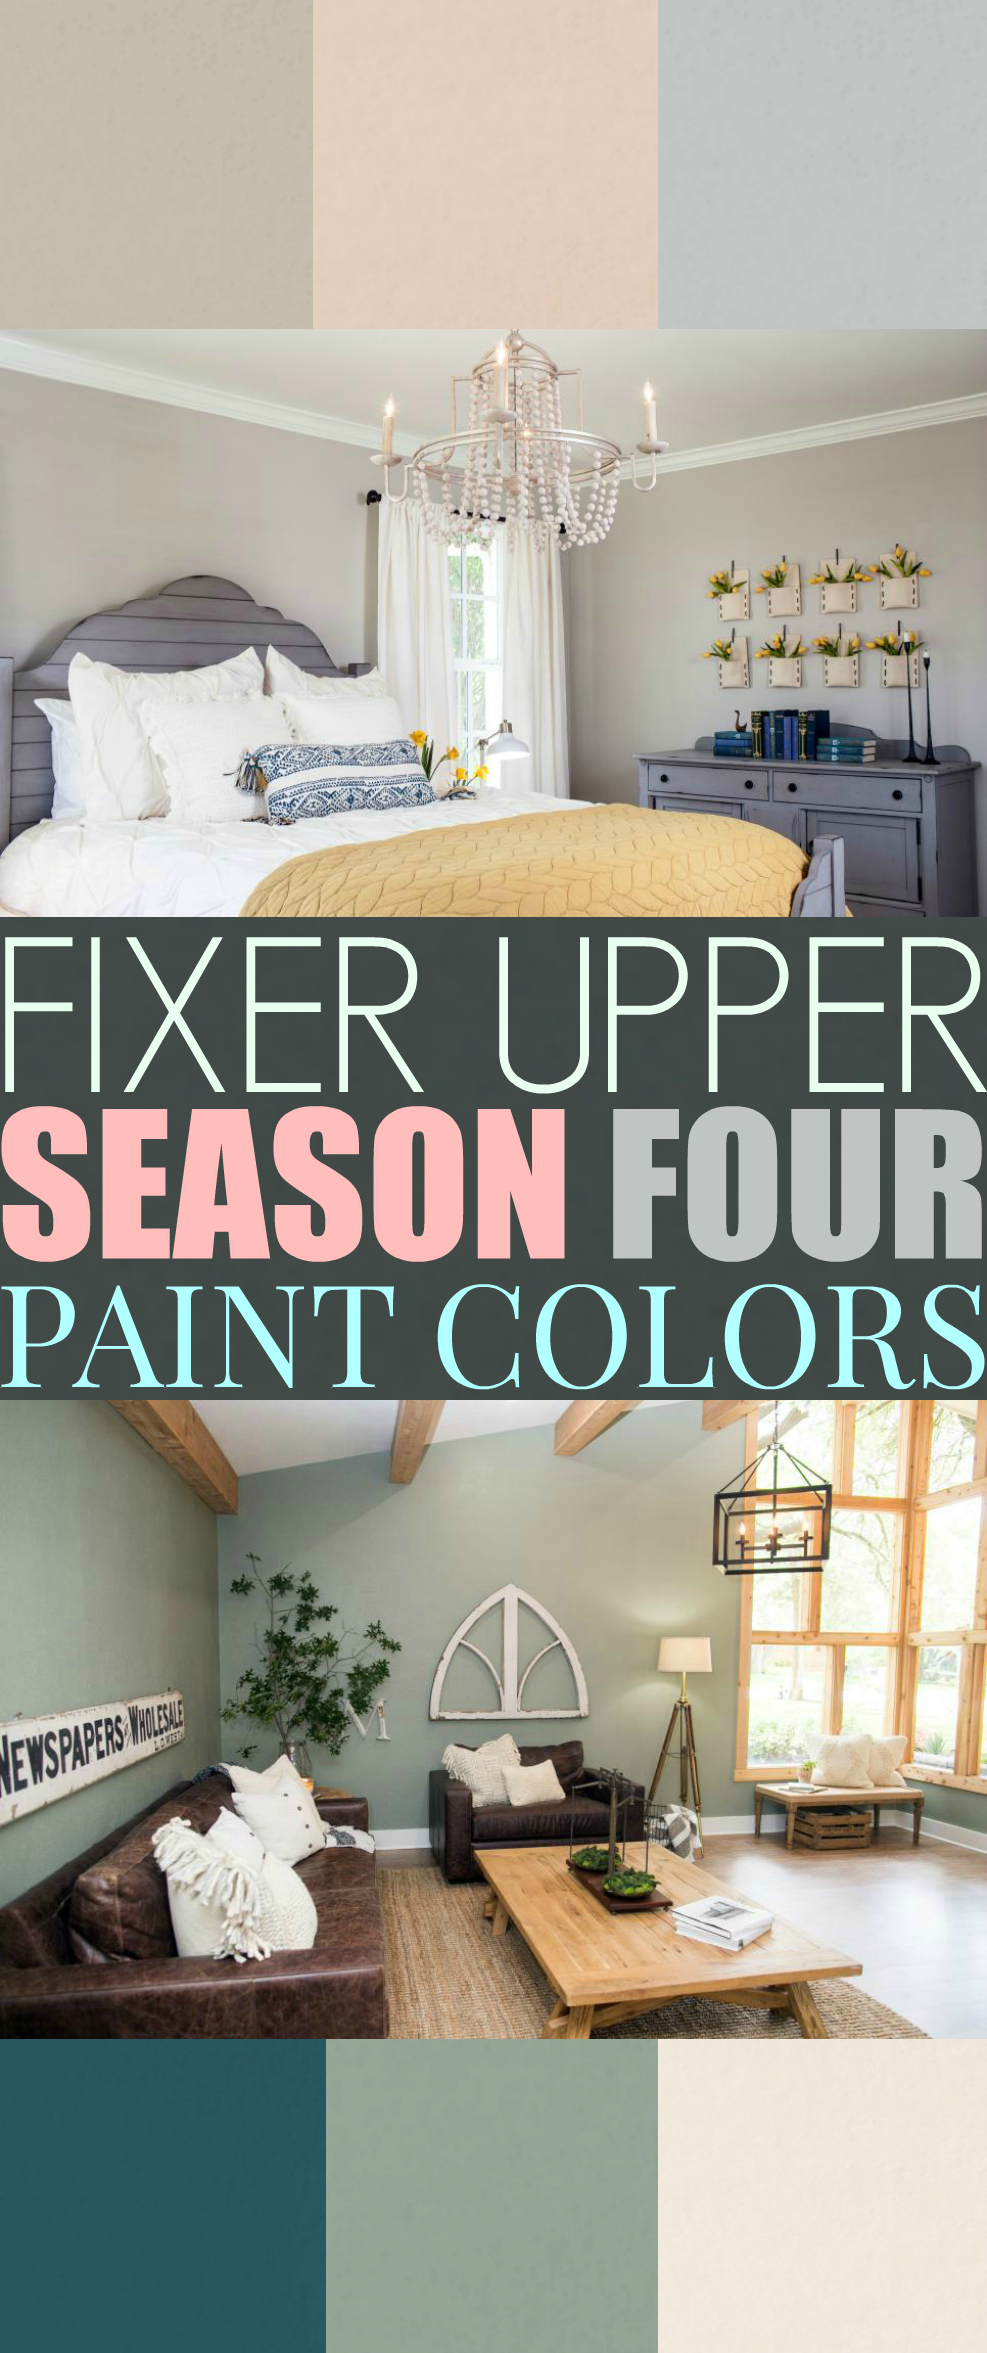 perfect green paint for living room colors walls fixer upper season four best matches your home 4